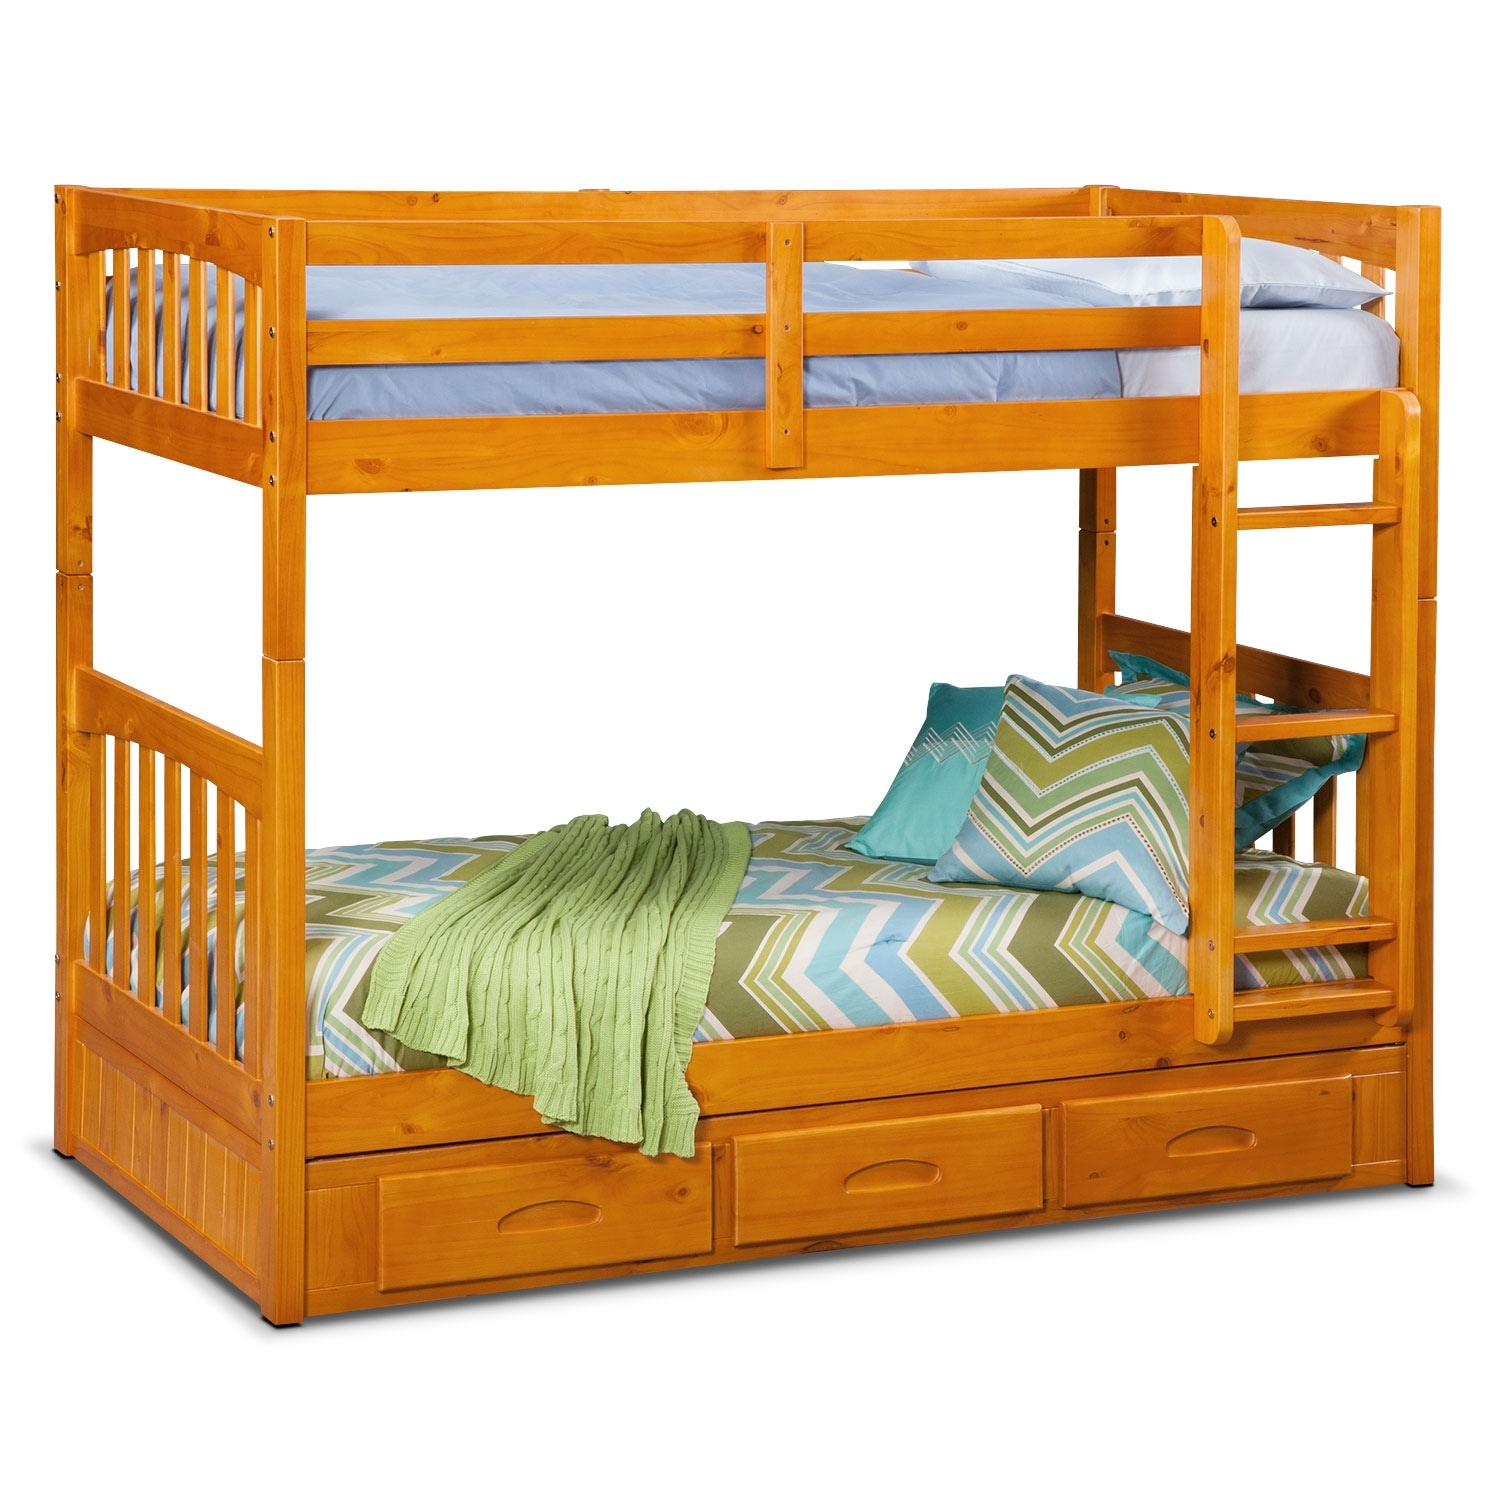 Kids Furniture - Ranger Pine Twin/Twin Bunk Bed w/ Storage